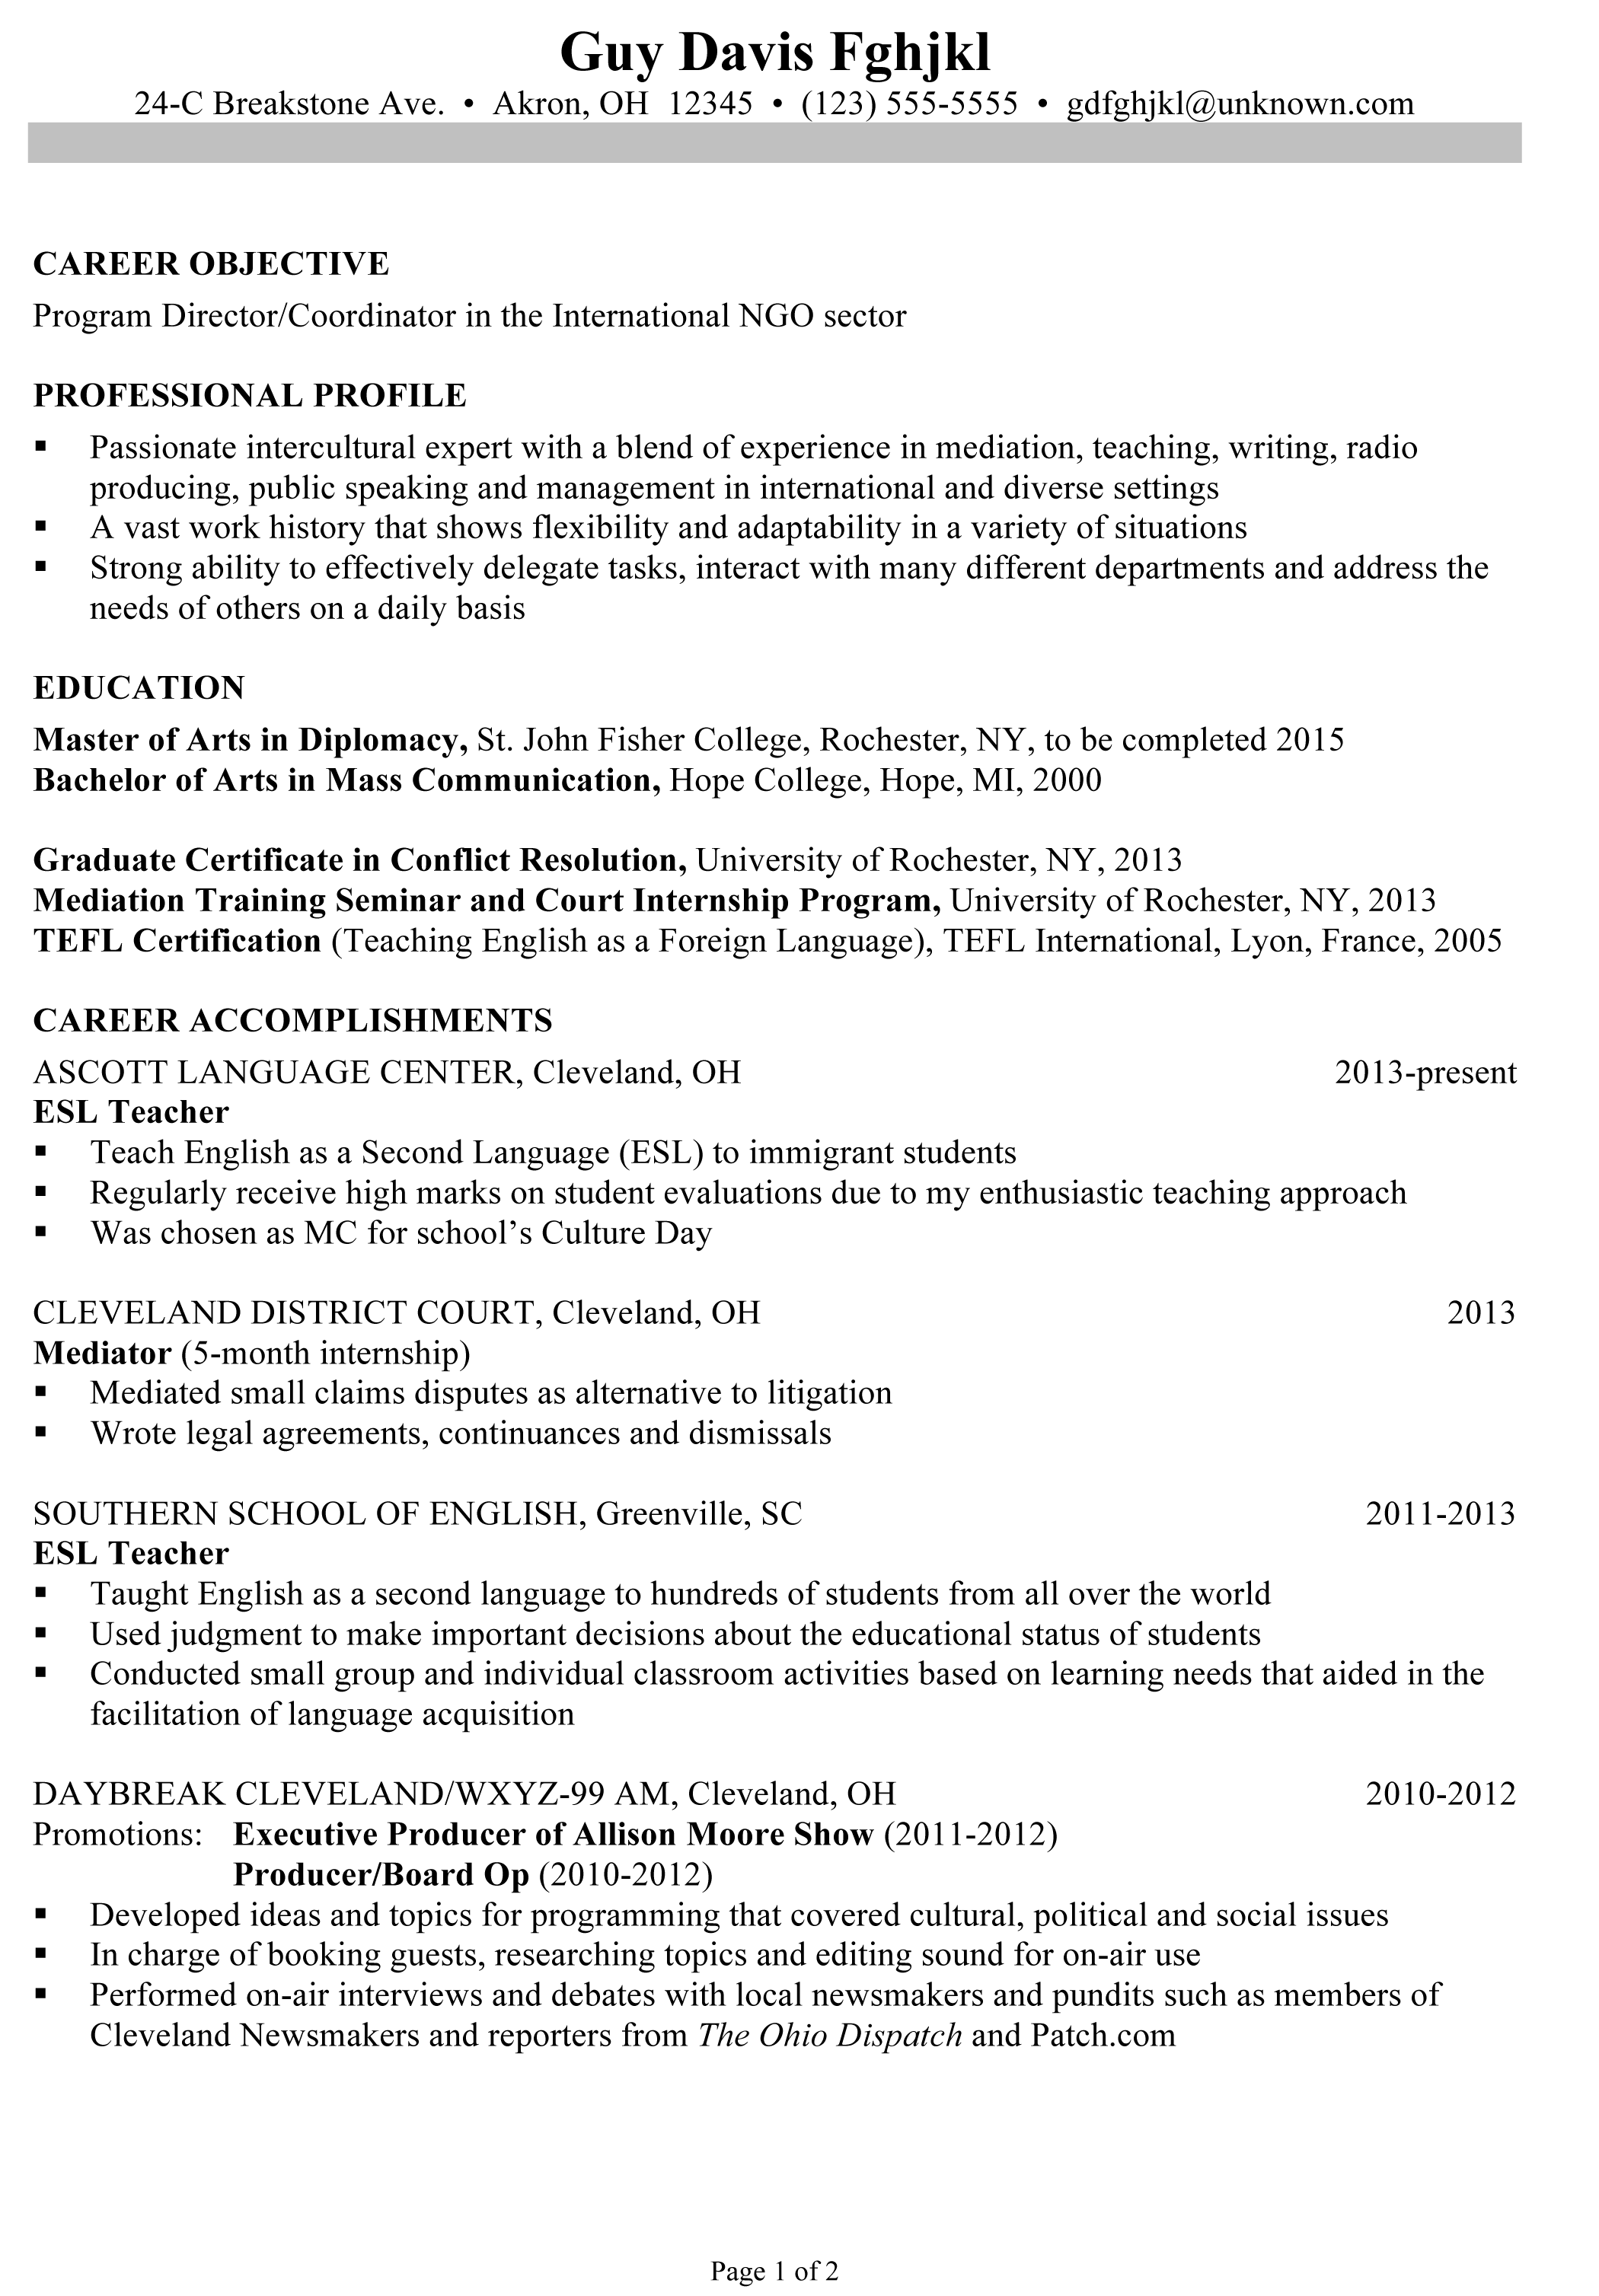 Professional summary resume example best templatesample resumes resume examples free and cover letter maker create online example resumes best free home design idea inspiration madrichimfo Choice Image